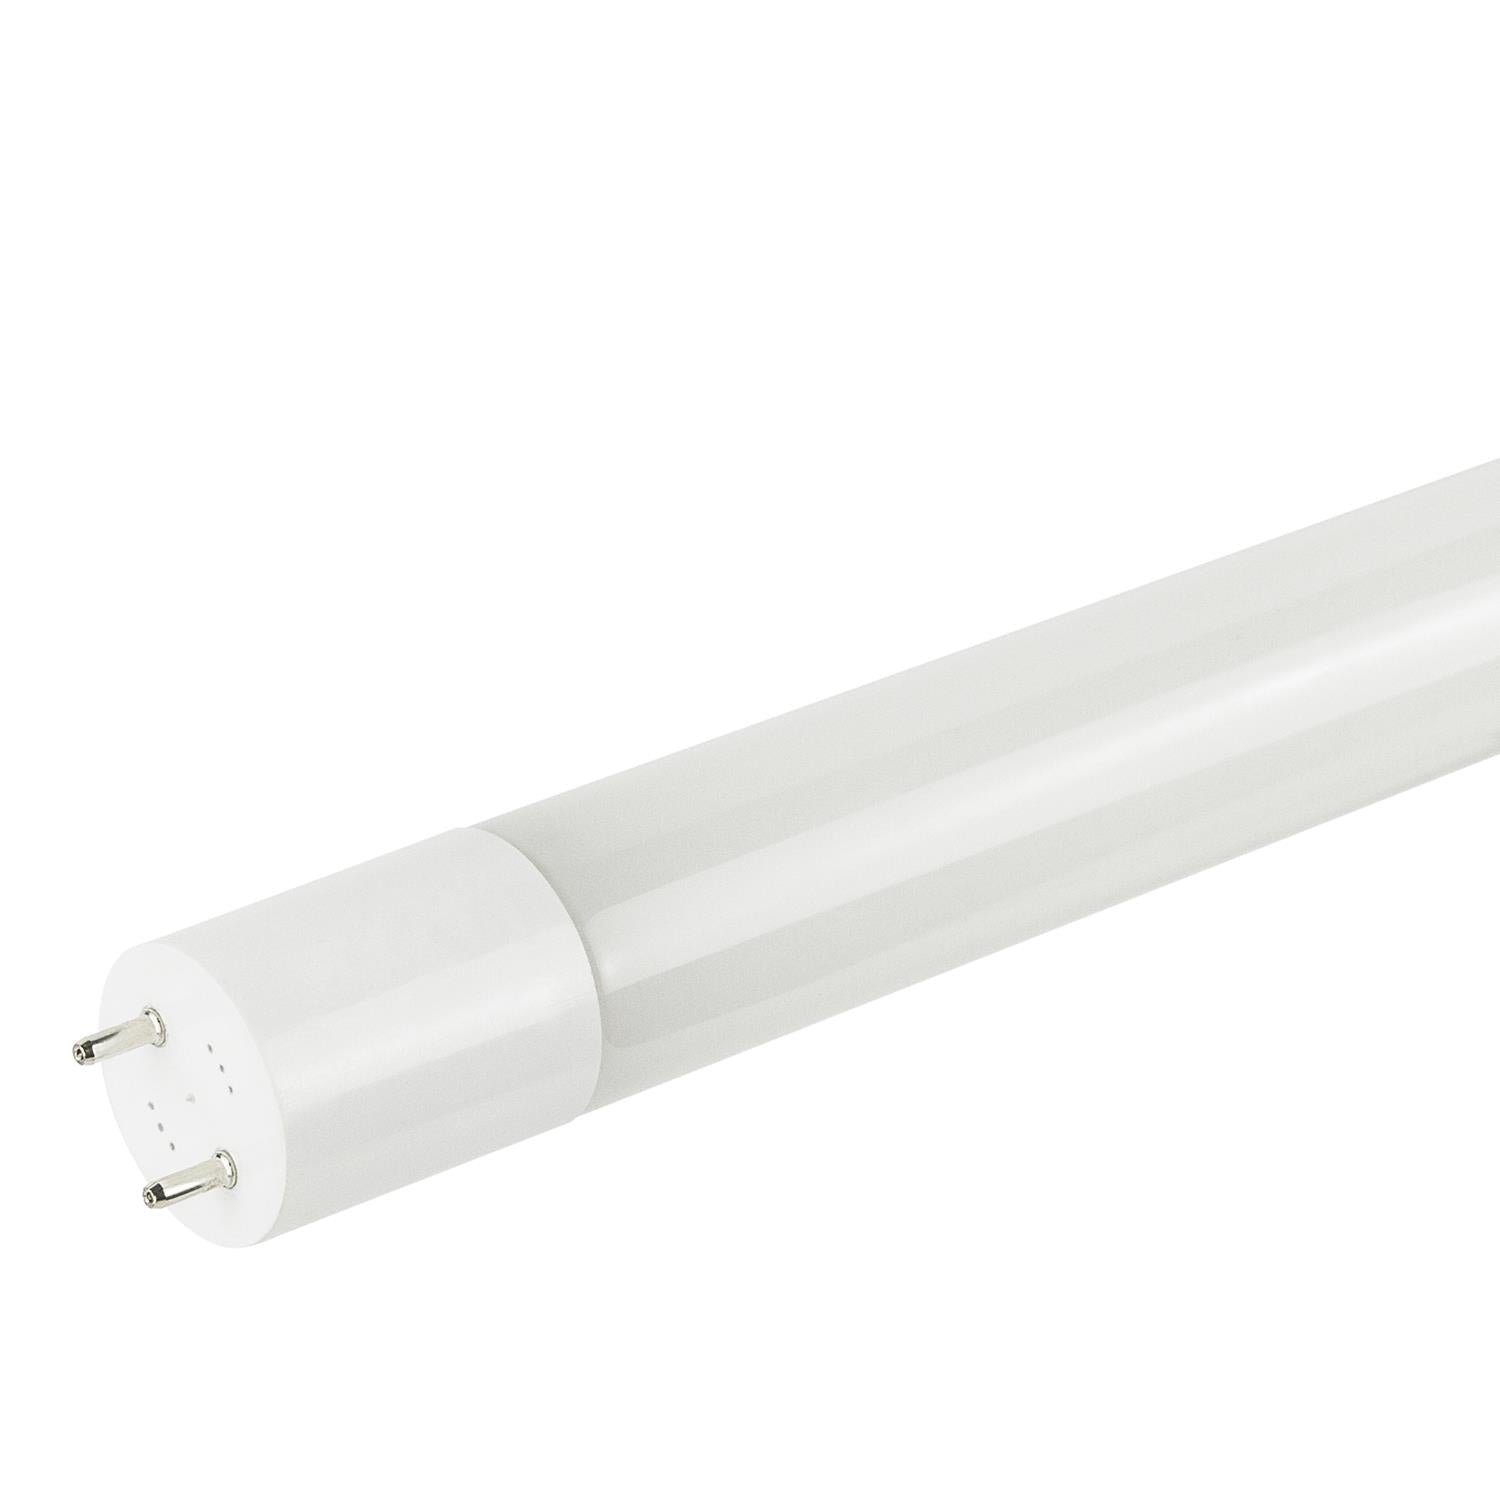 SUNLITE 8w T8 LED Tube 3000K Warm White G13 Base